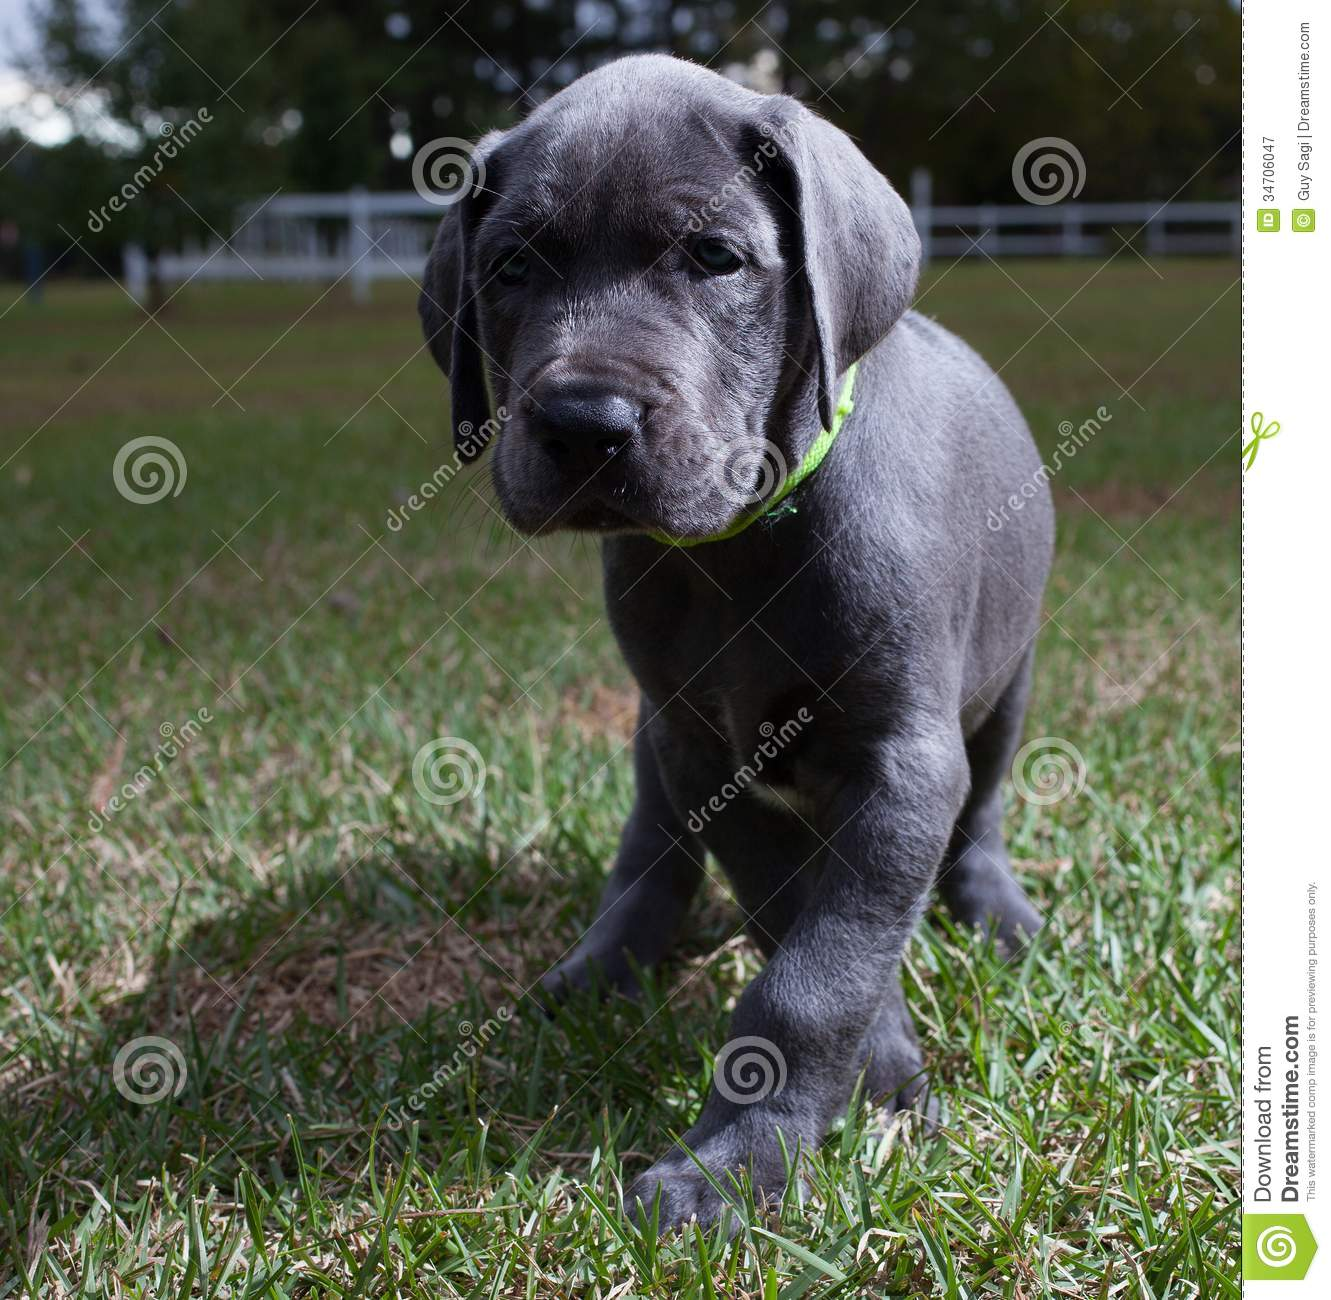 Curious Puppy Royalty Free Stock Photography  Image 34706047